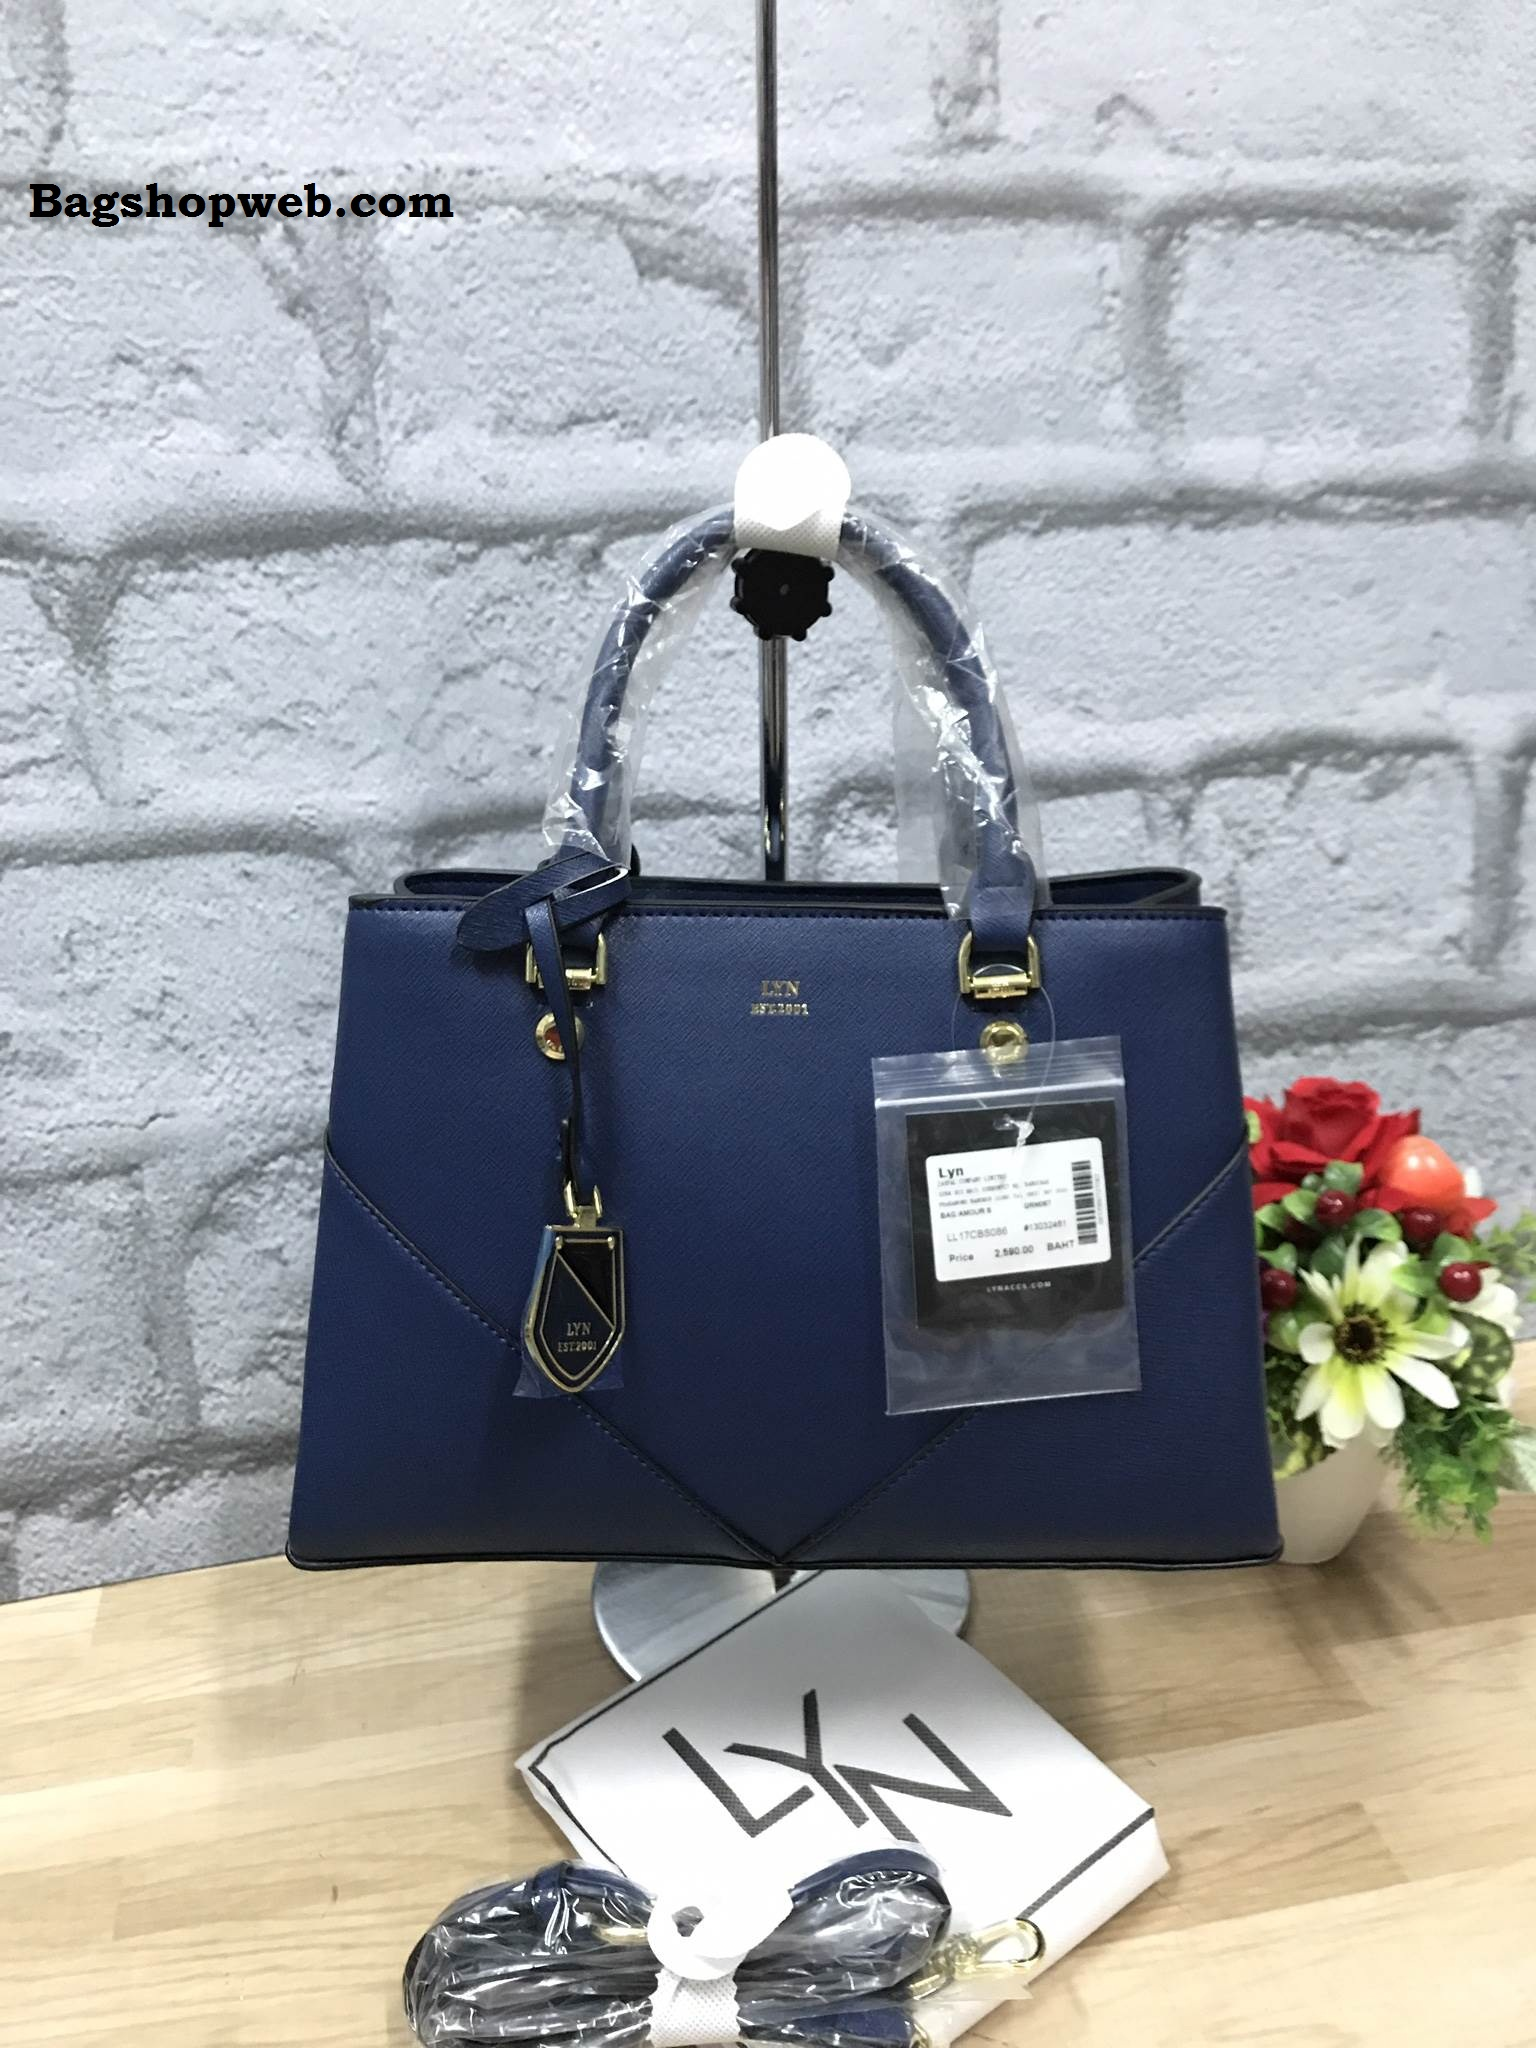 LYN AMOUR M BAG 2017